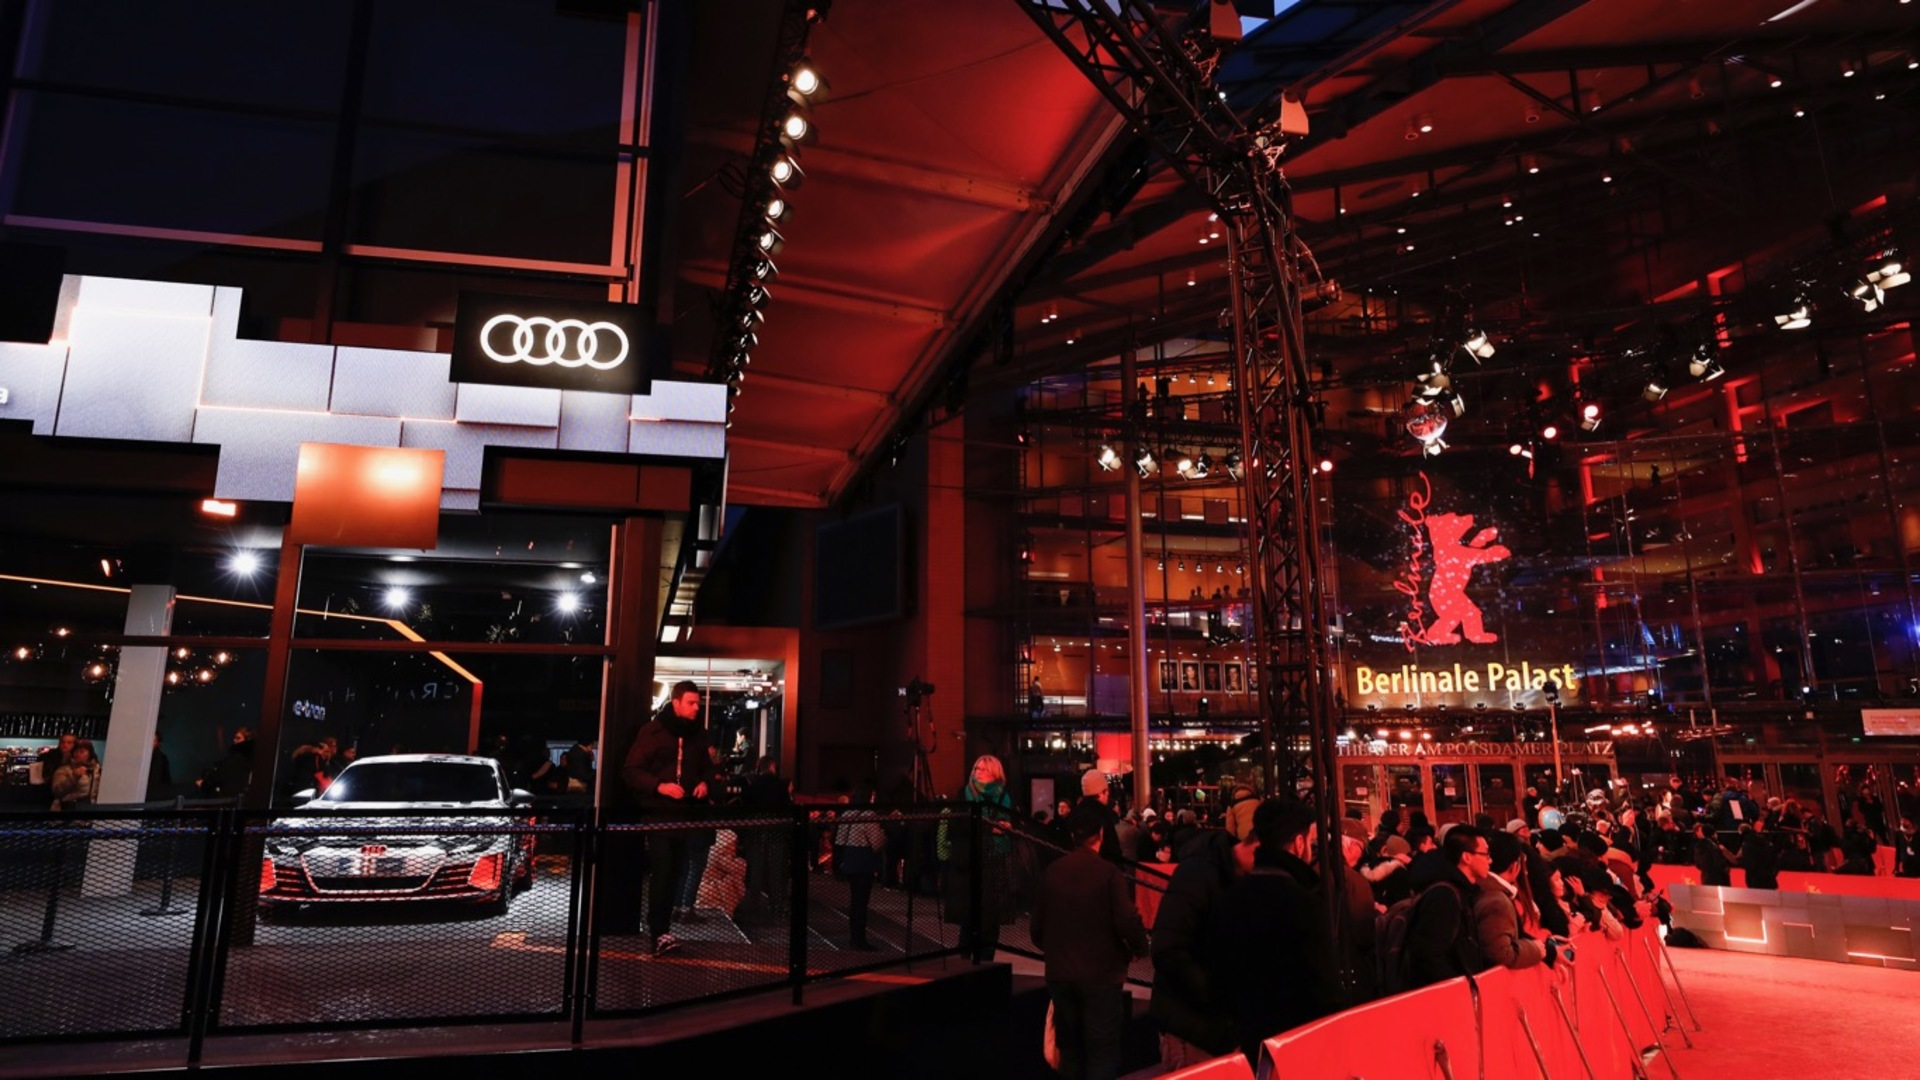 Berlin International Film Festival meets Audi e-tron